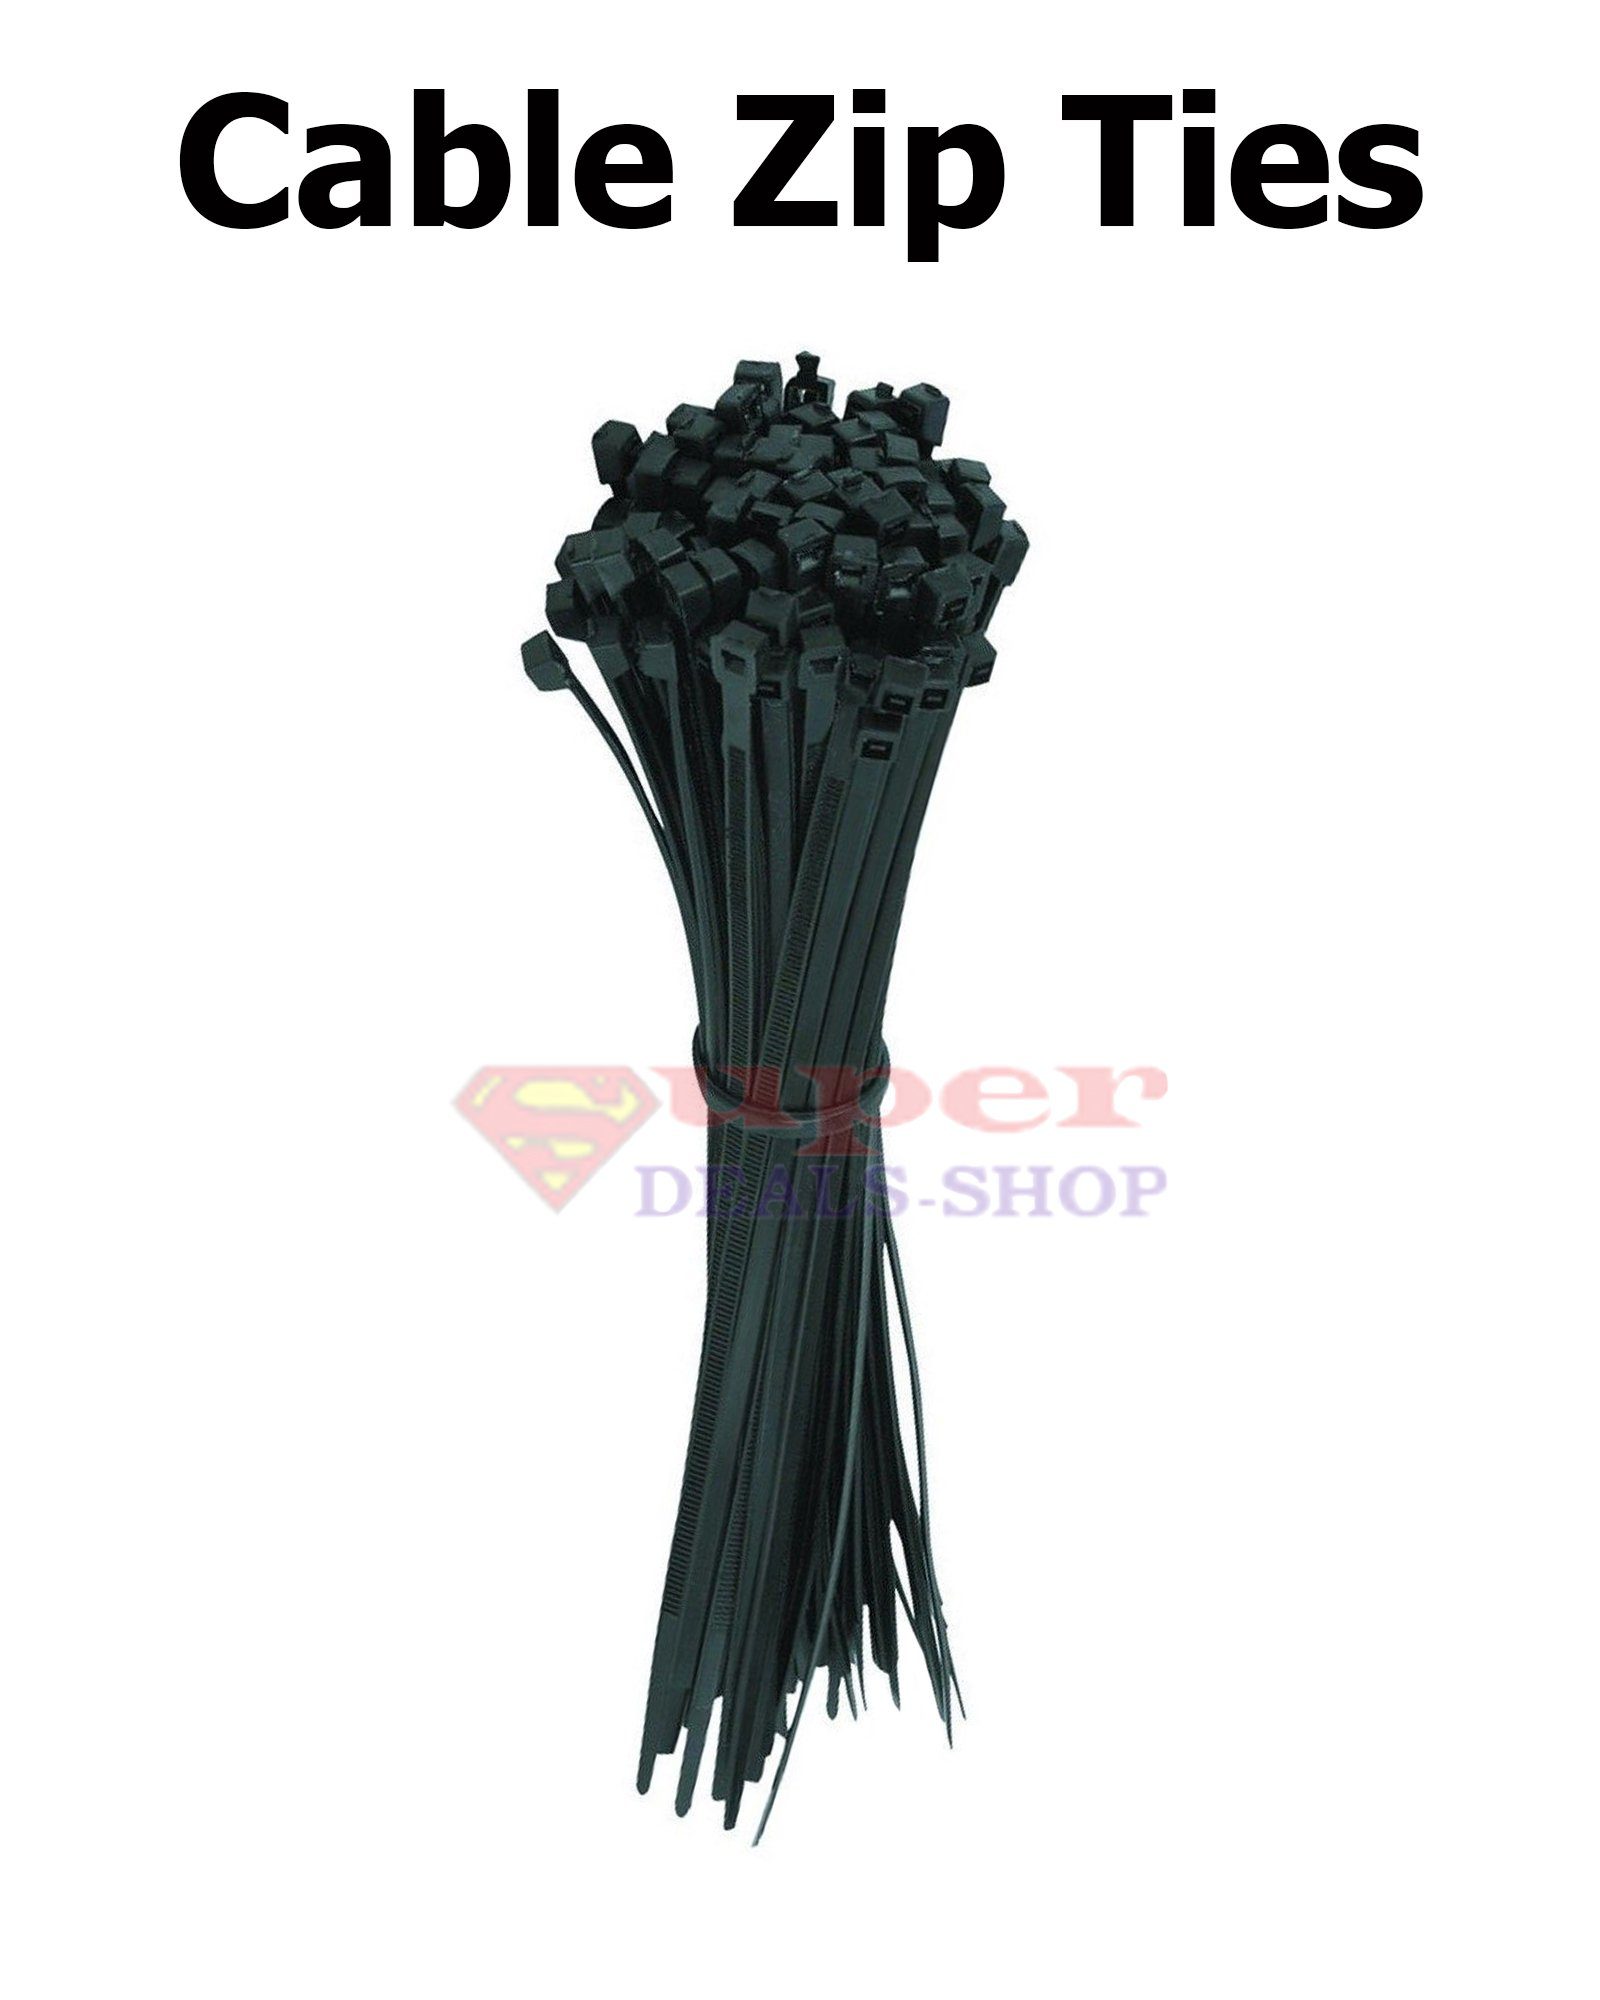 100 pcs 8 Inch Cable Zip Ties Heavy Duty Zip Ties Nylon Cable Ties Black Zip Tie Super-Deals-Shop